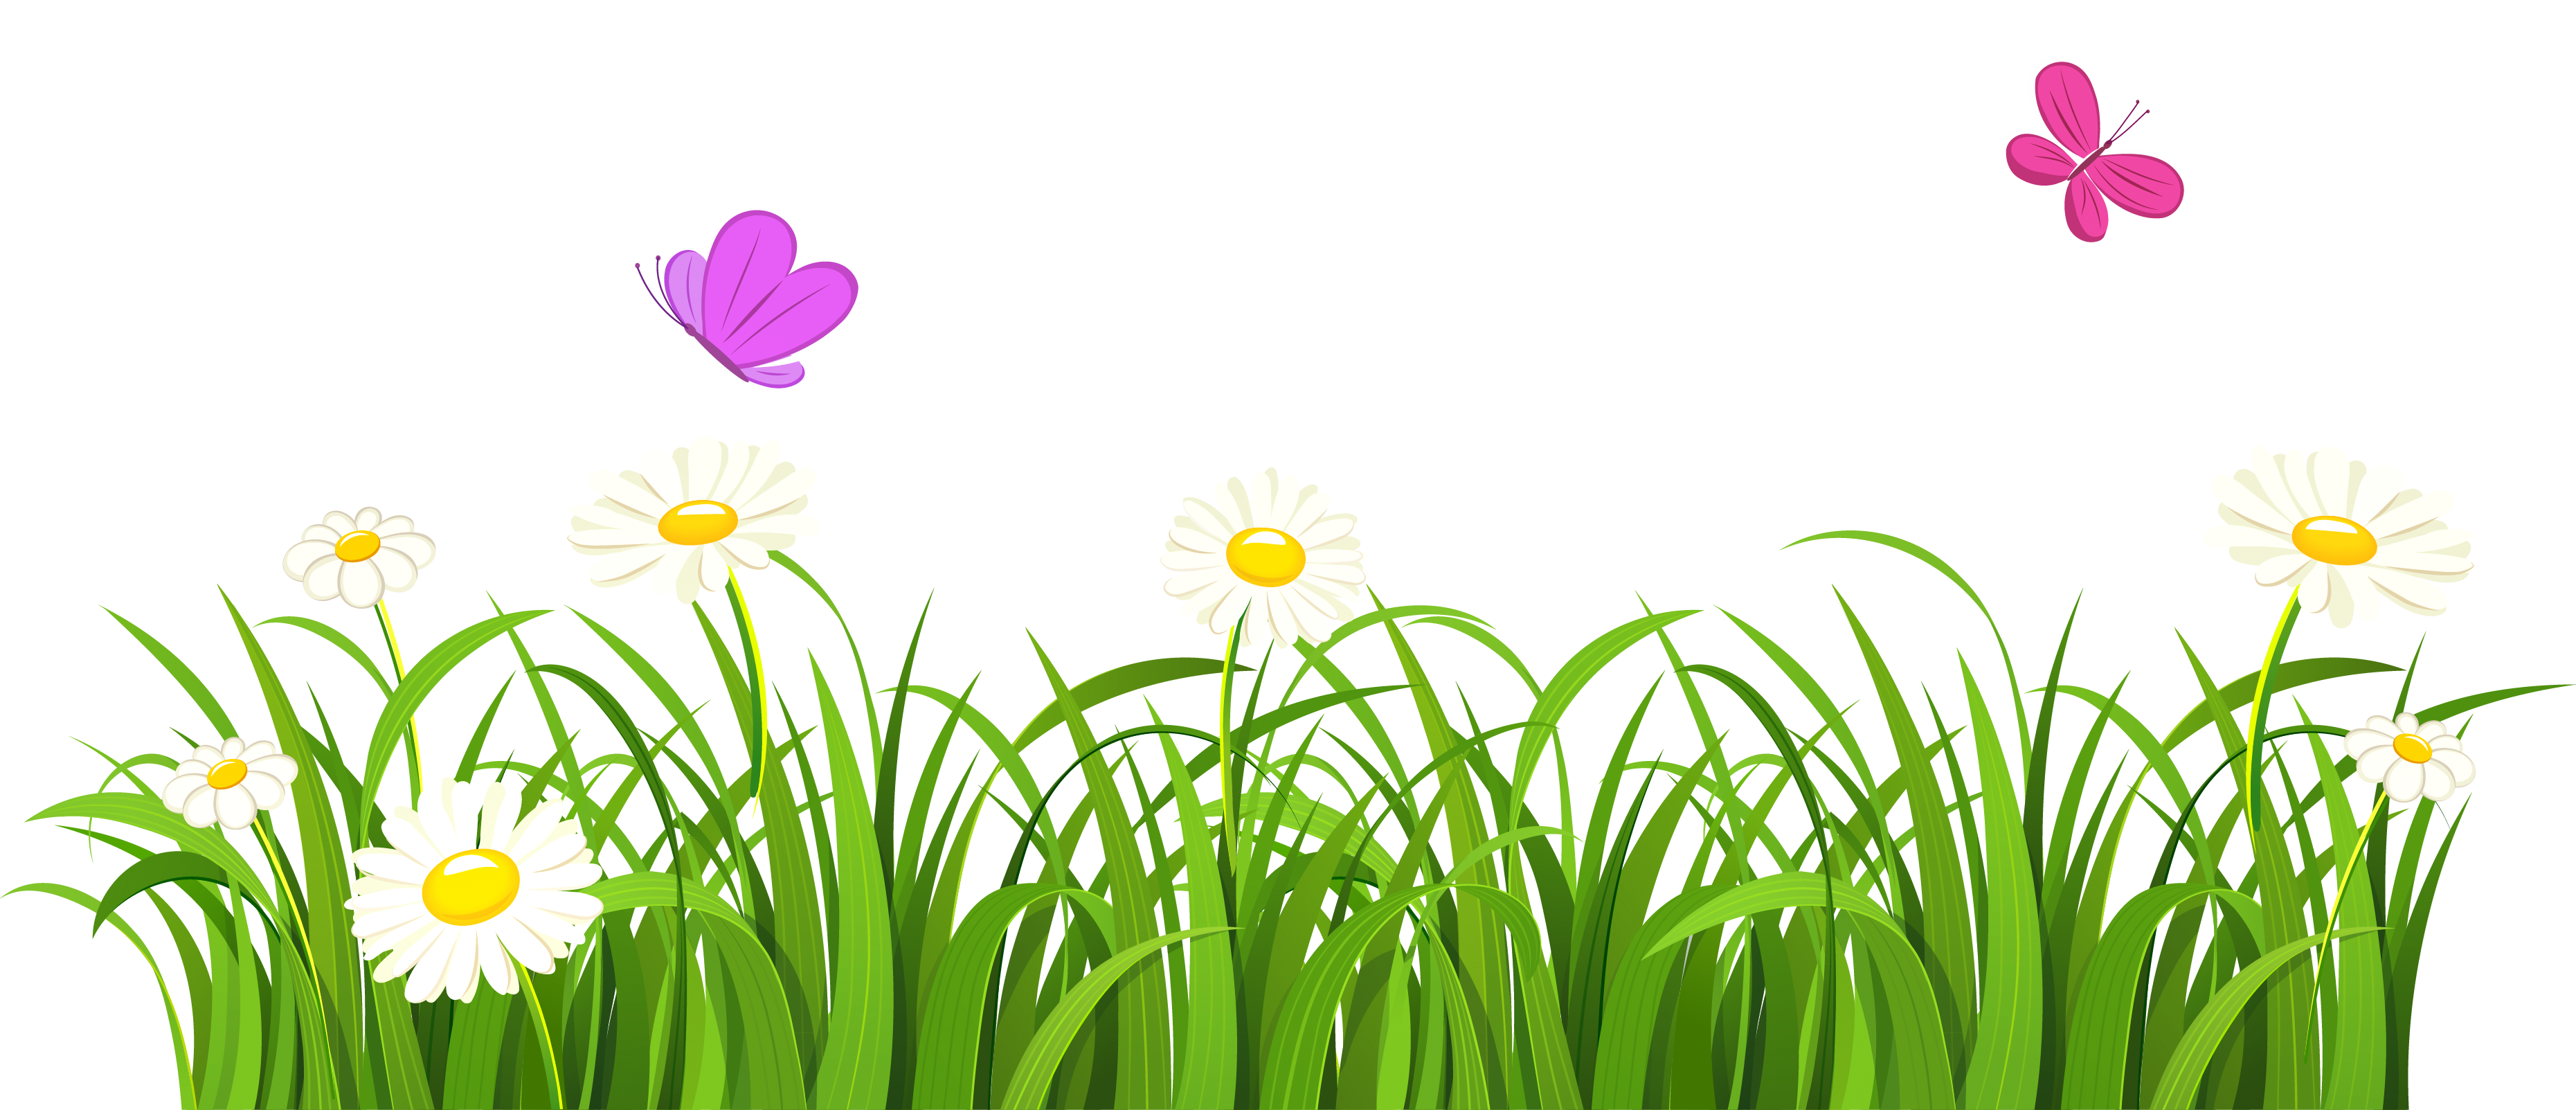 Spring flower banner clipart graphic Free clip art nature trees tree with grass clipart image | Diversos ... graphic